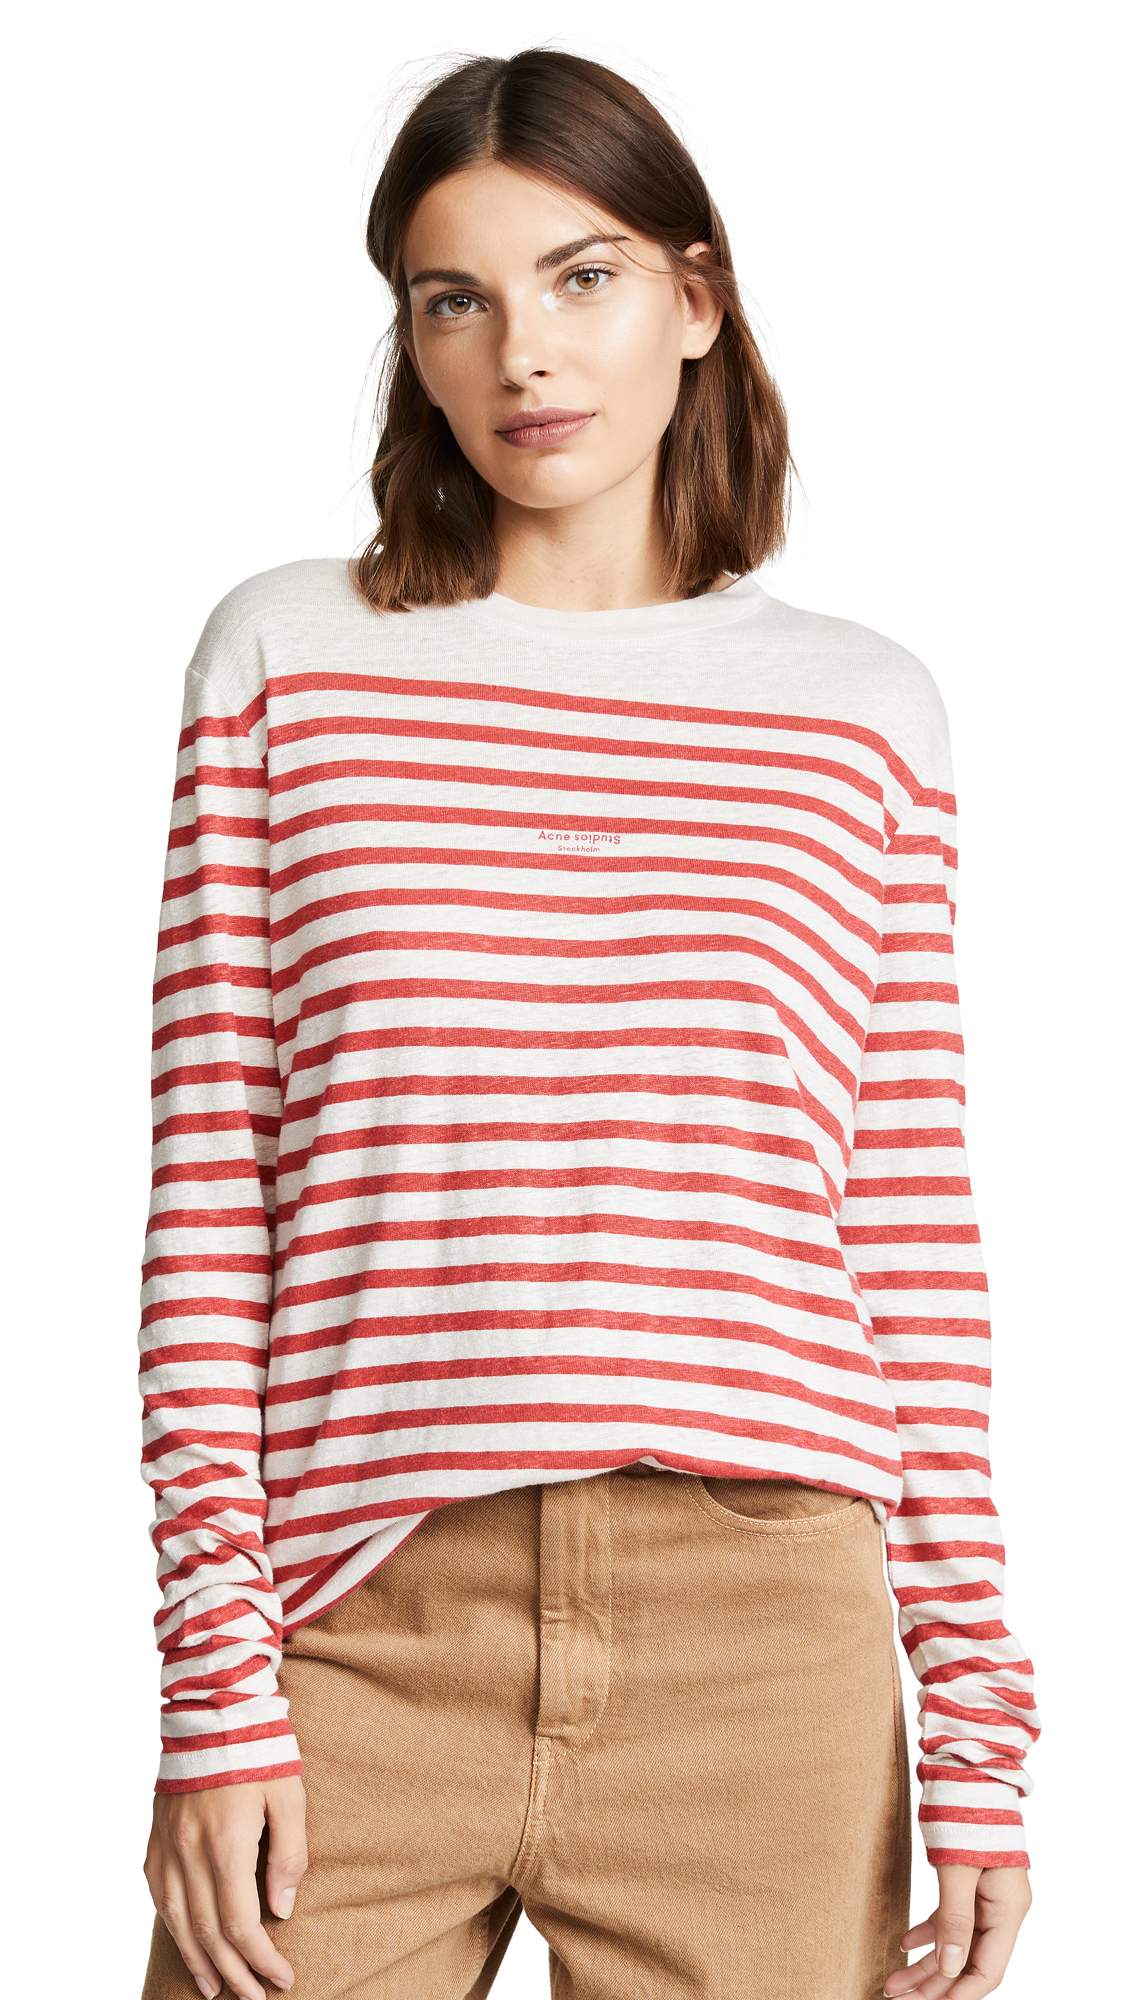 Acne Studios Striped Long Sleeve Tee - White/Red